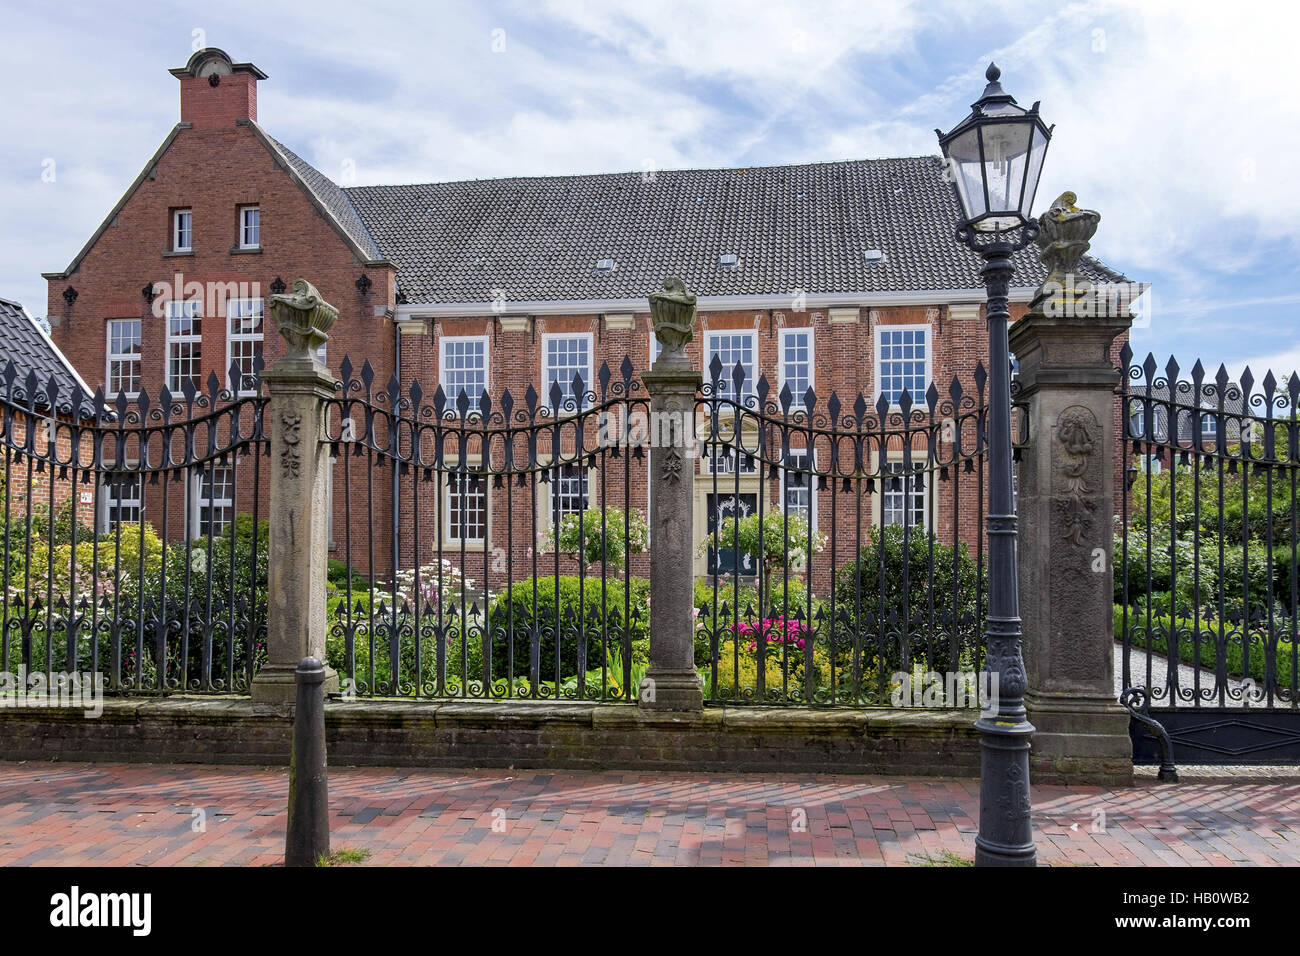 District Court Leer, Ostfriesland - Stock Image